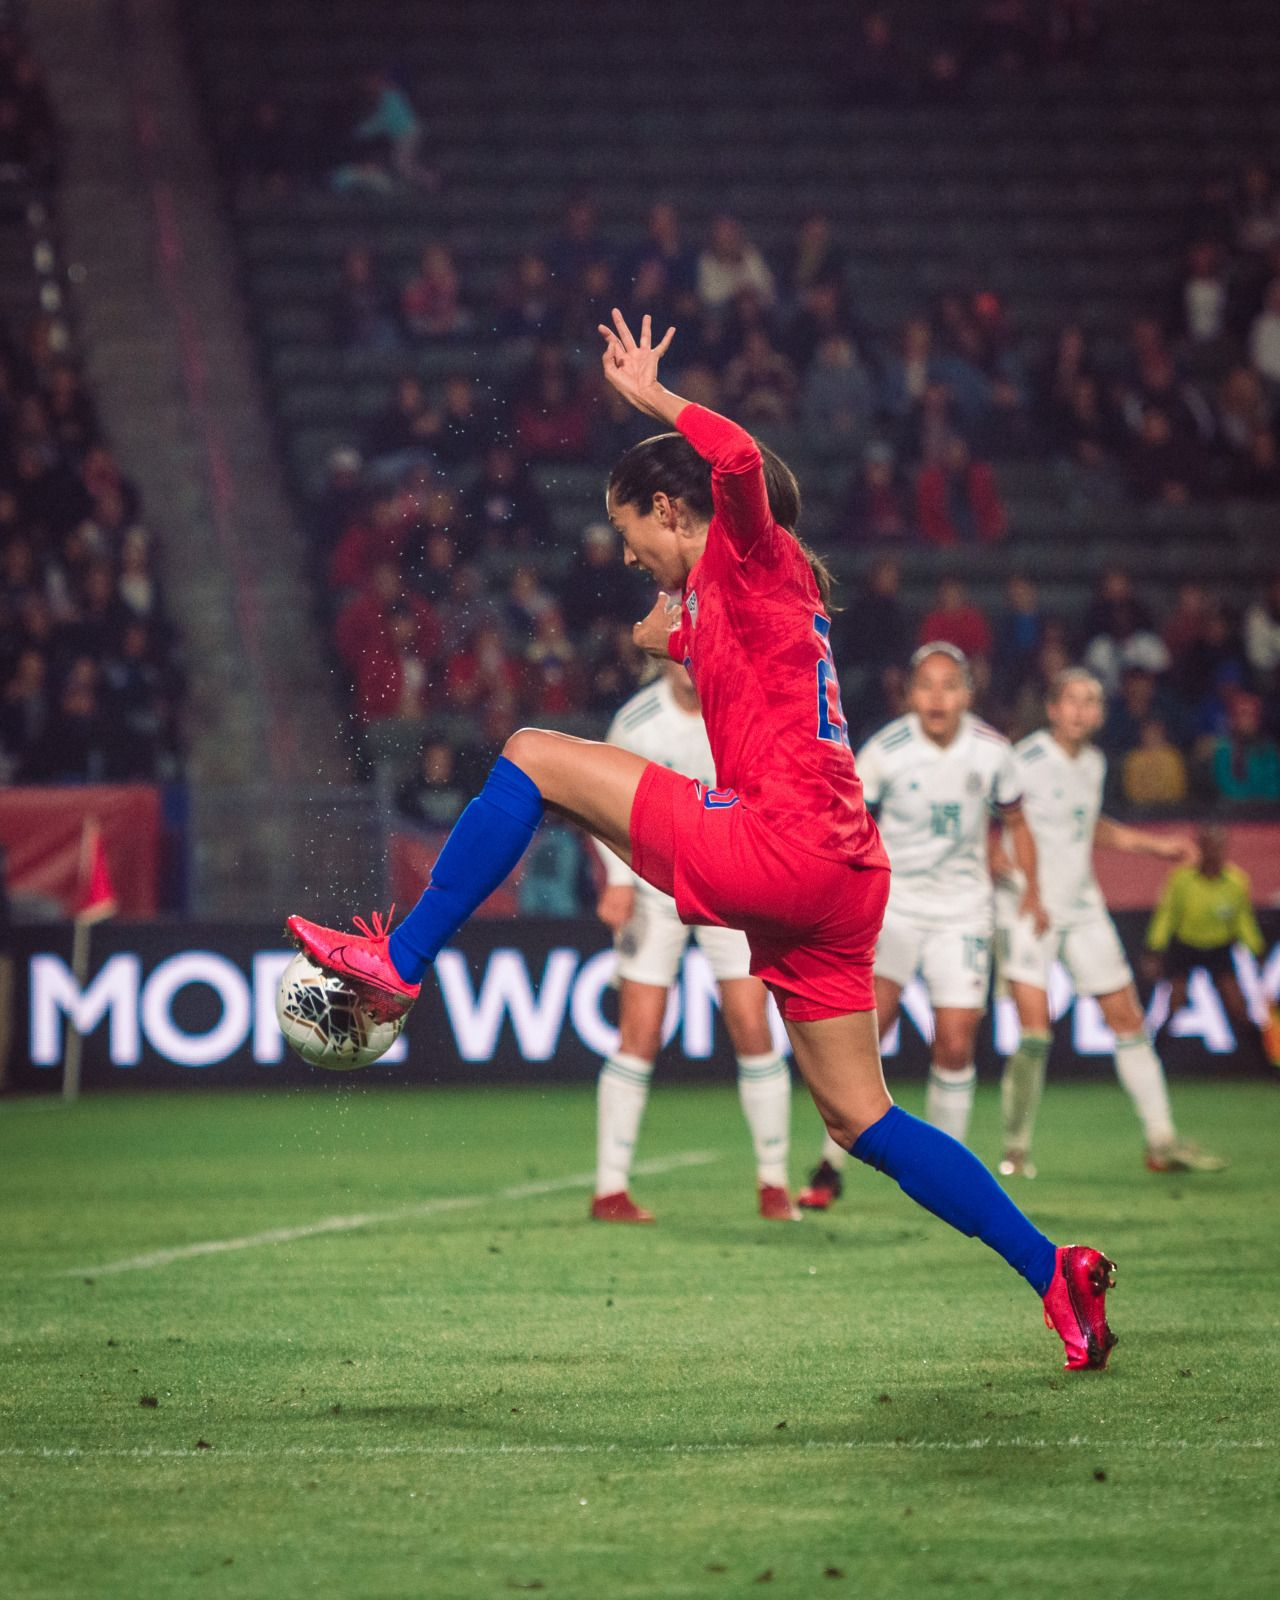 Back In The Off Season In 2020 Uswnt Soccer Womens Soccer Uswnt